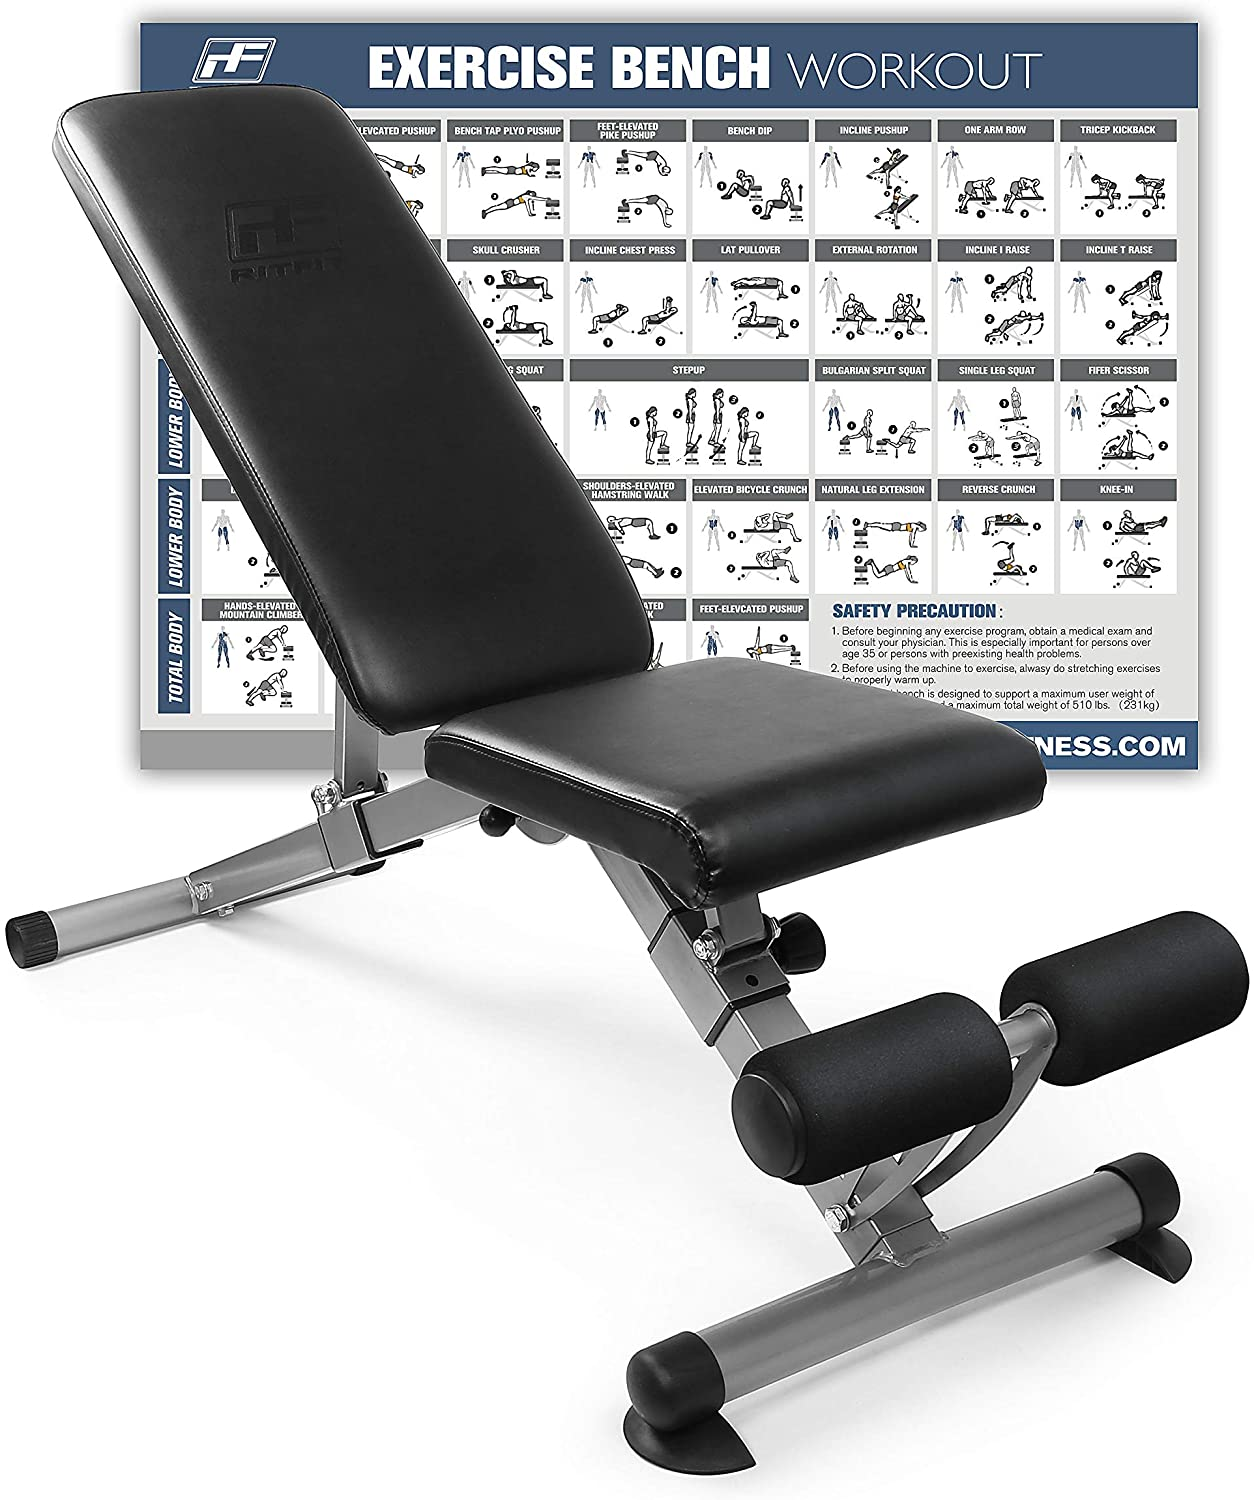 Best portable weight-bench: RitFit Adjustable/Foldable Utility Bench